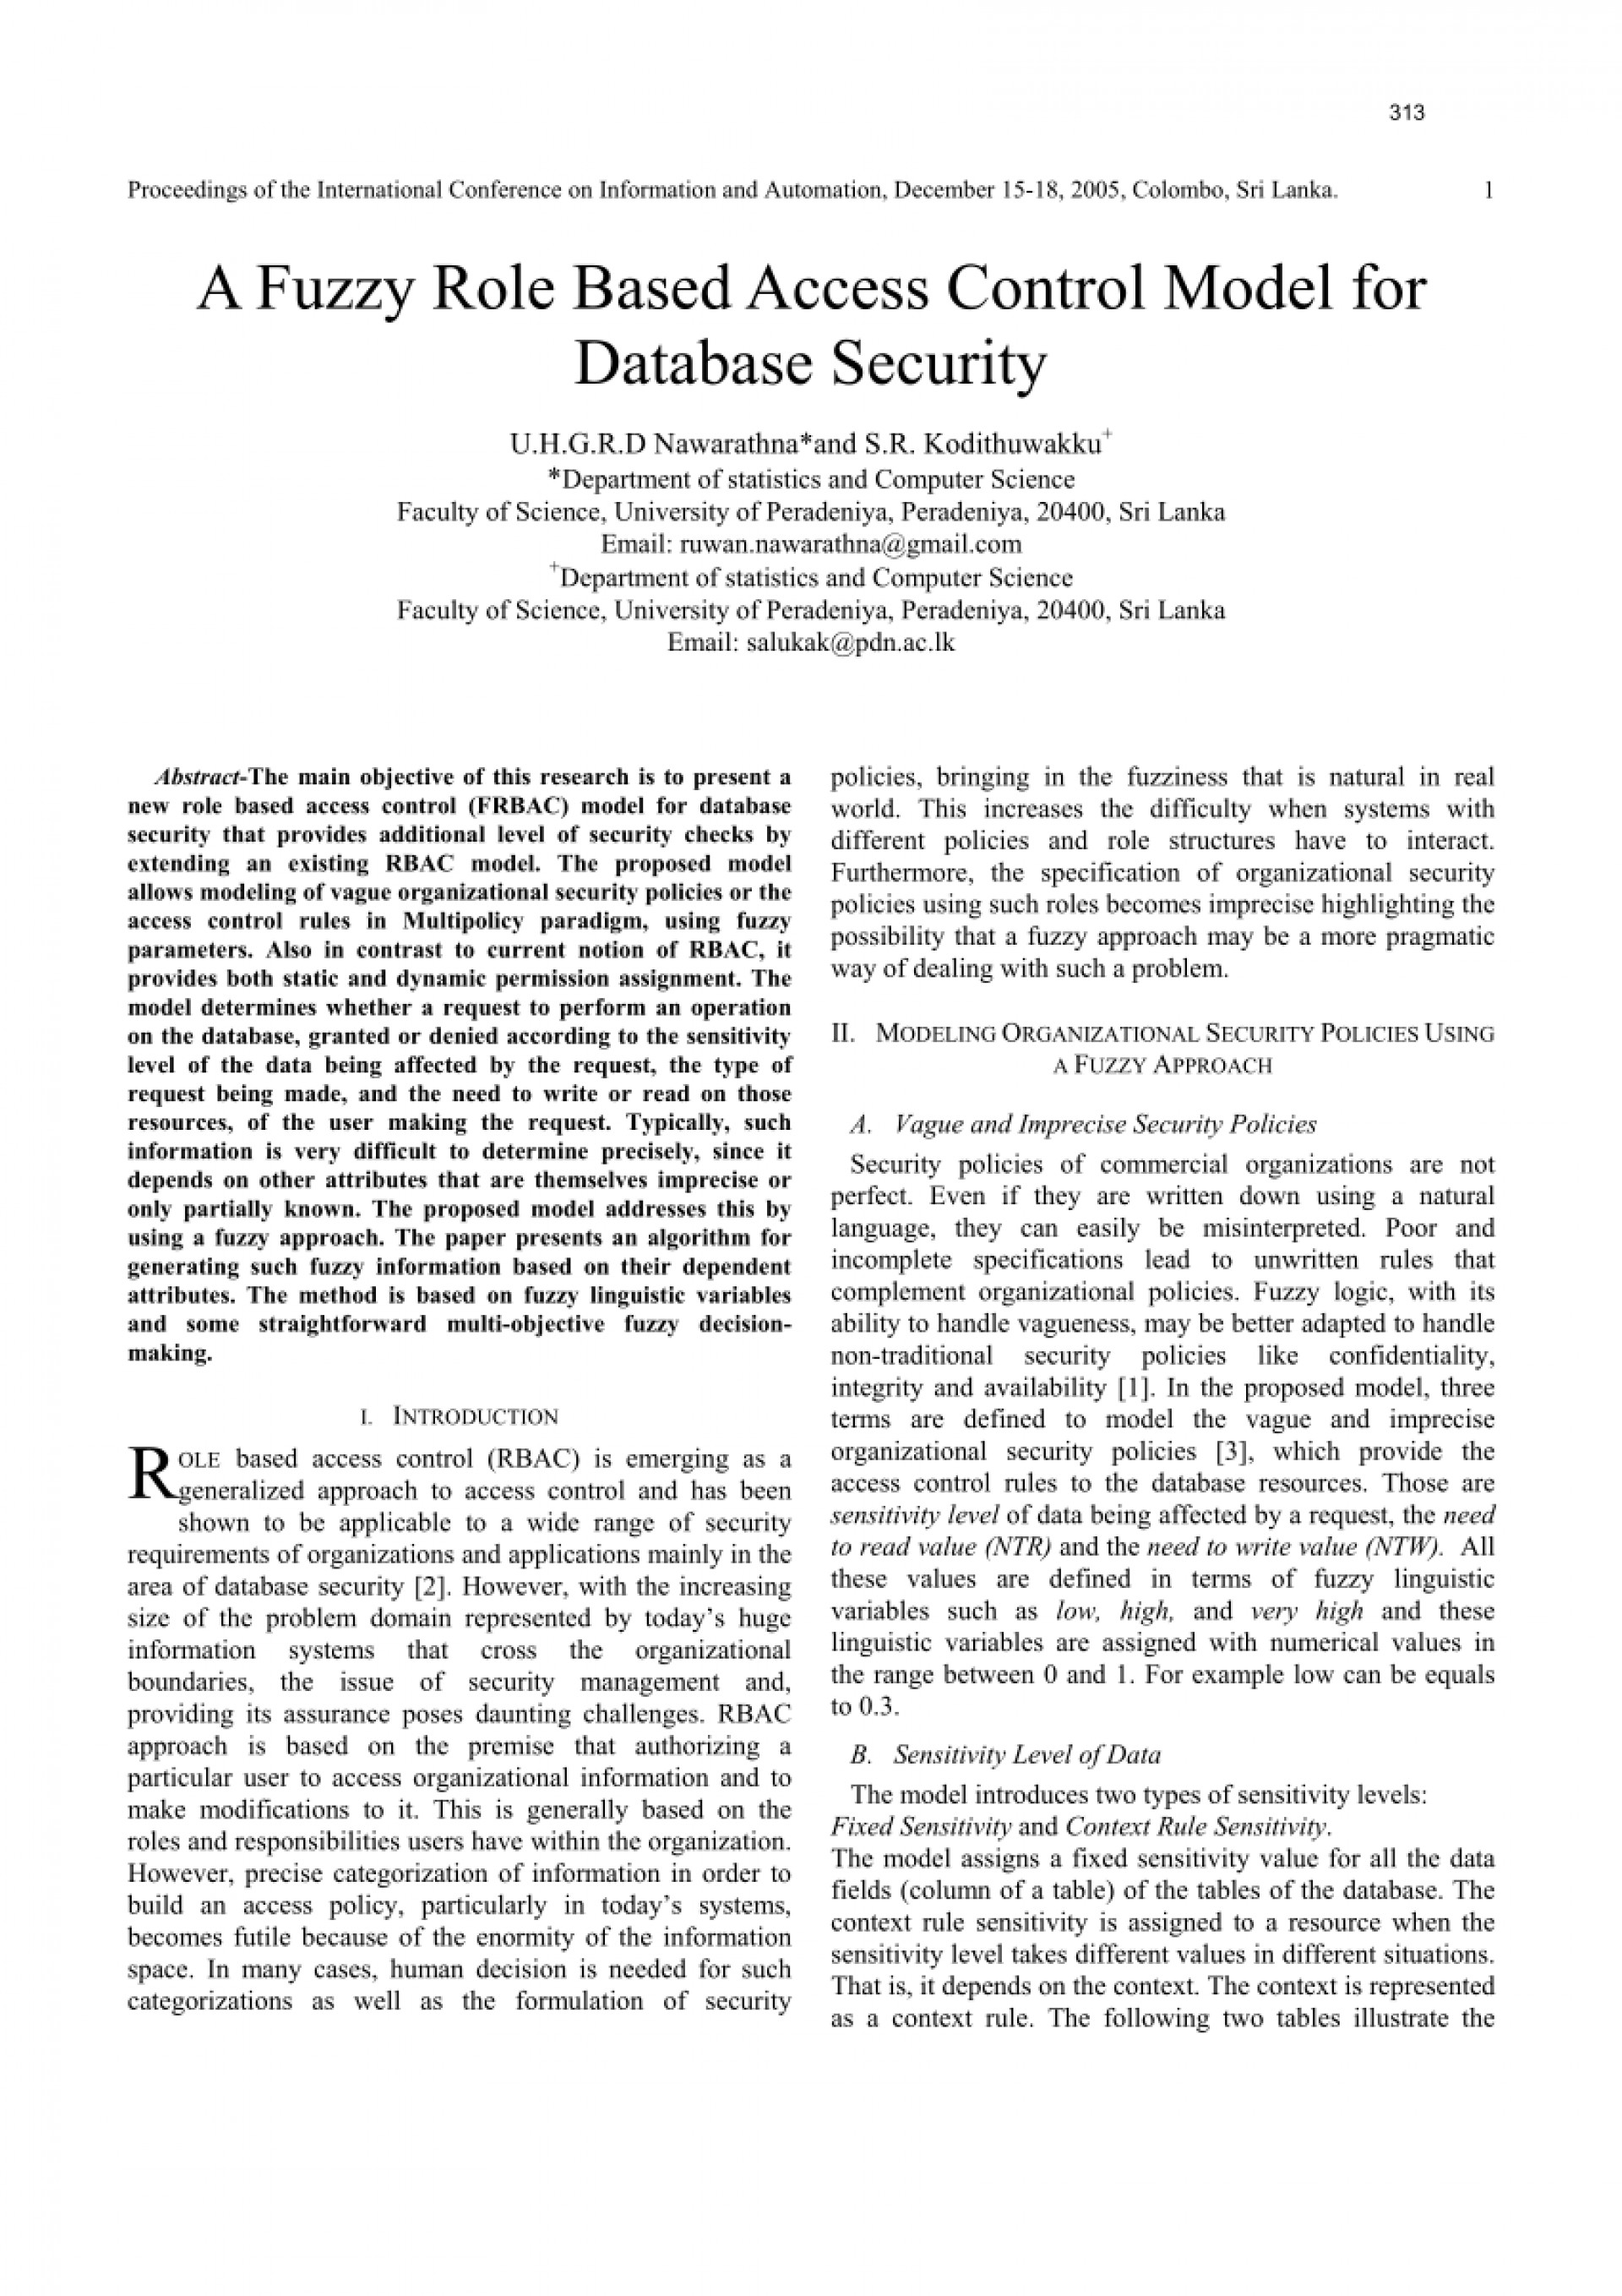 007 Database Security Research Paper Abstract Fascinating 1920